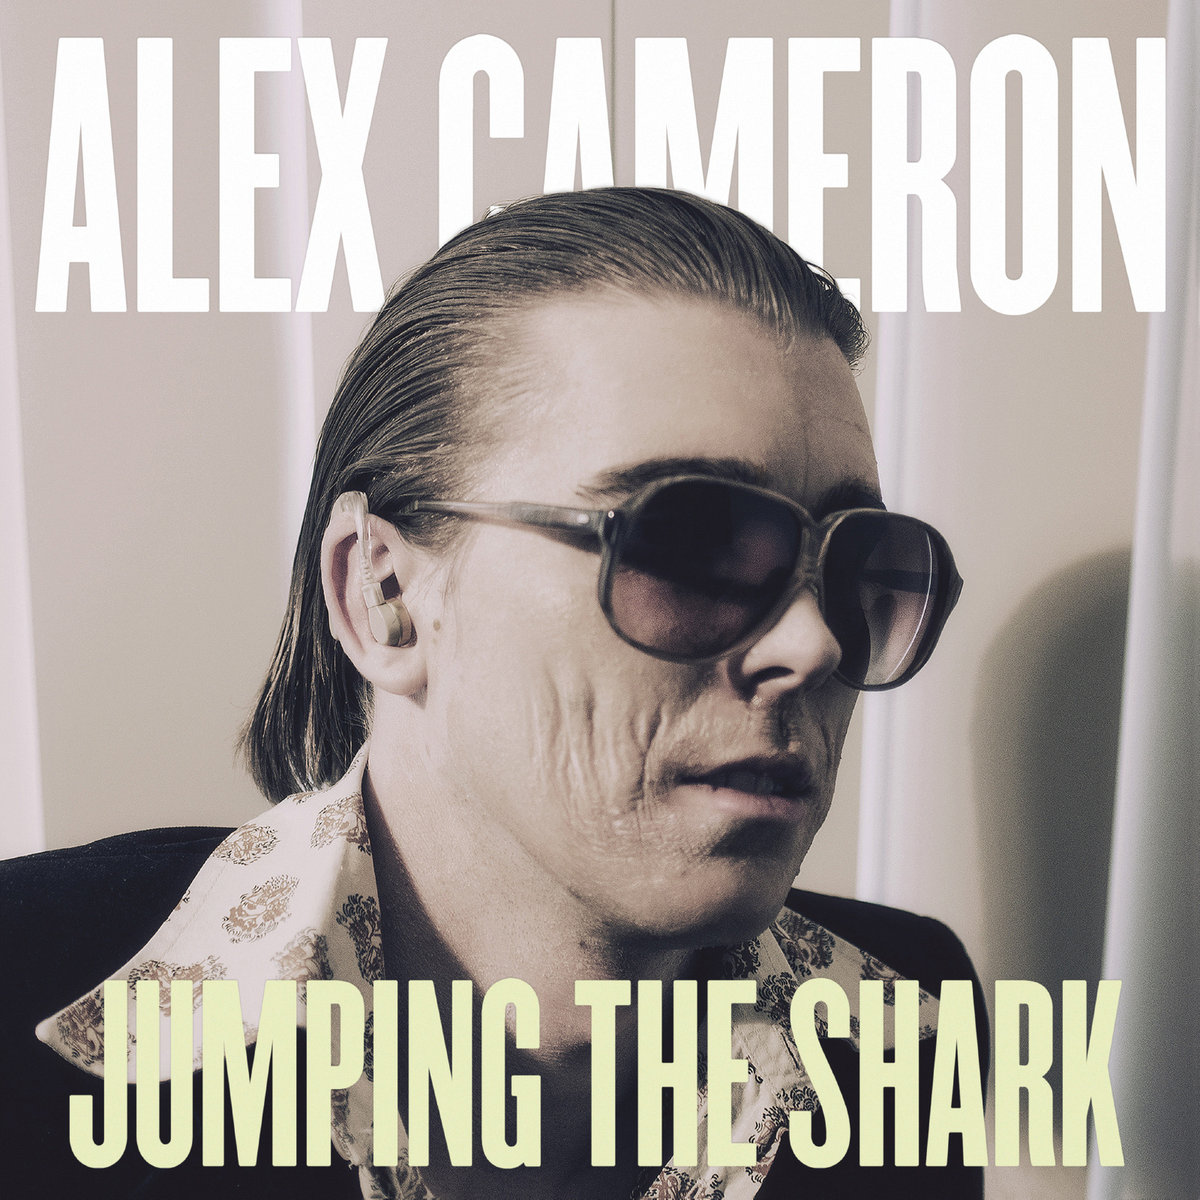 Alex Cameron ALBUM: JUMPING THE SHARK TRACK: THE COMEBACK